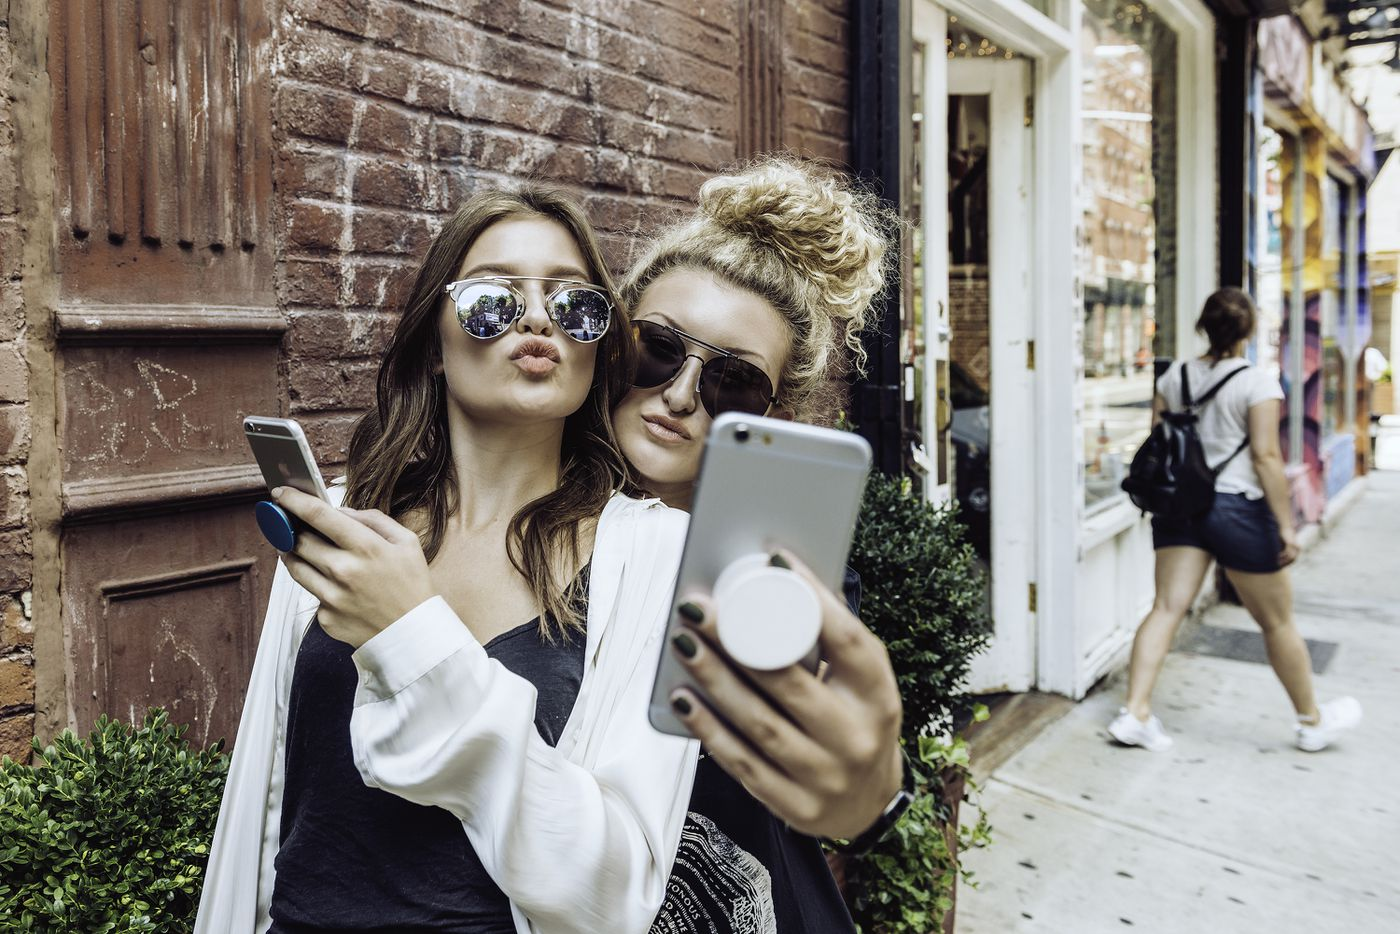 PopSockets' founder on how the brand deals with counterfeits